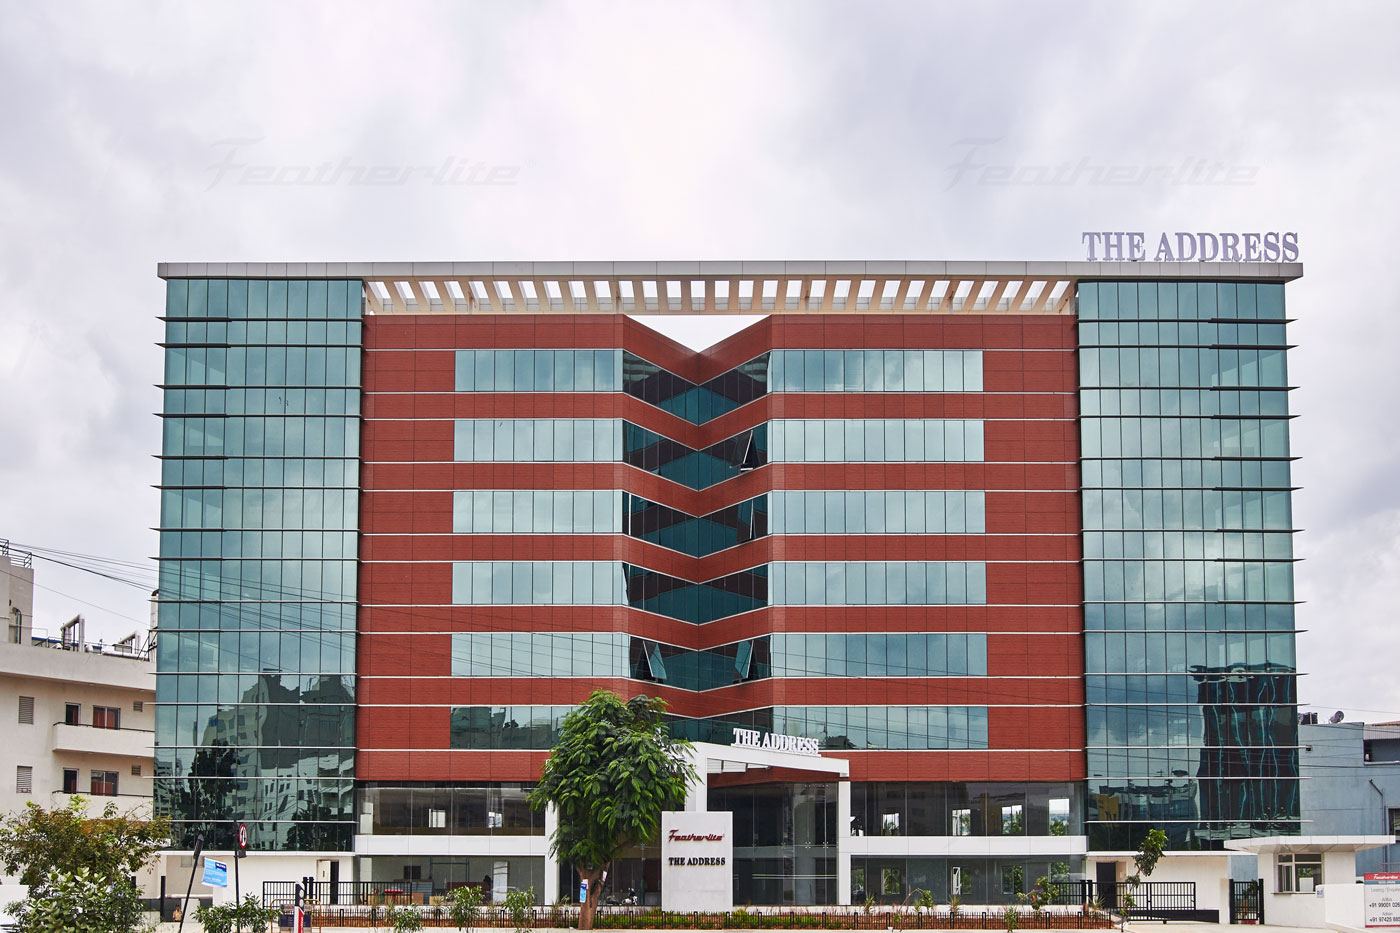 The Address - Evoma Business Center in Marathahalli, Bangalore